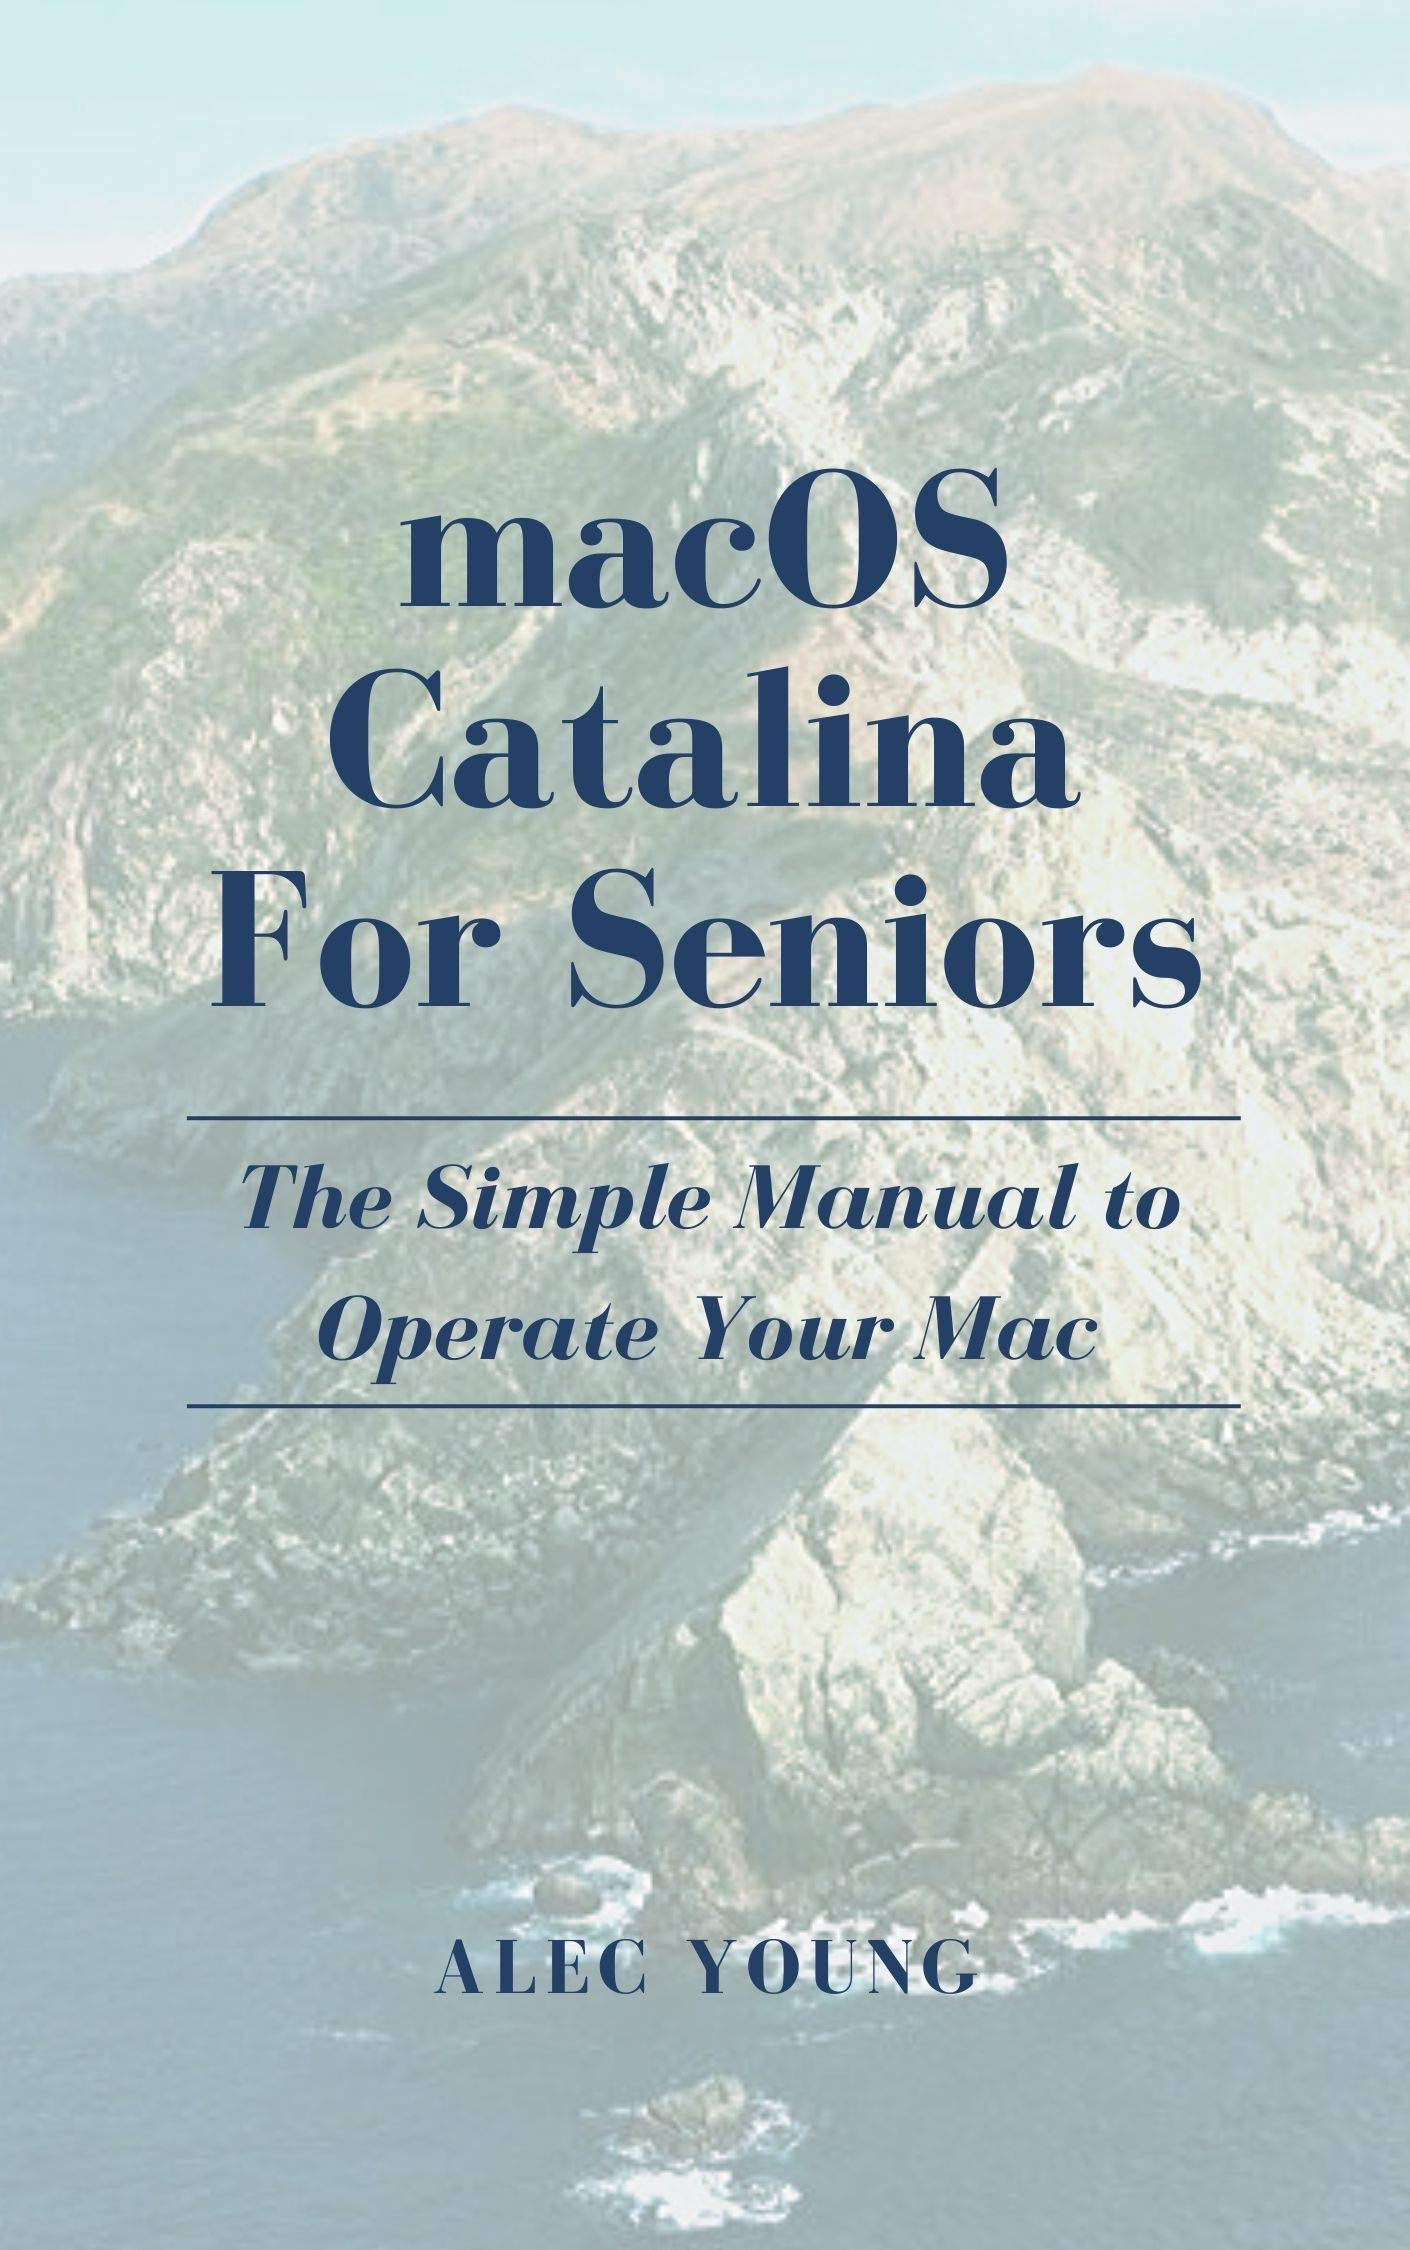 Image OfMacOS Catalina For Seniors: The Simple Manual To Operate Your Mac (English Edition)